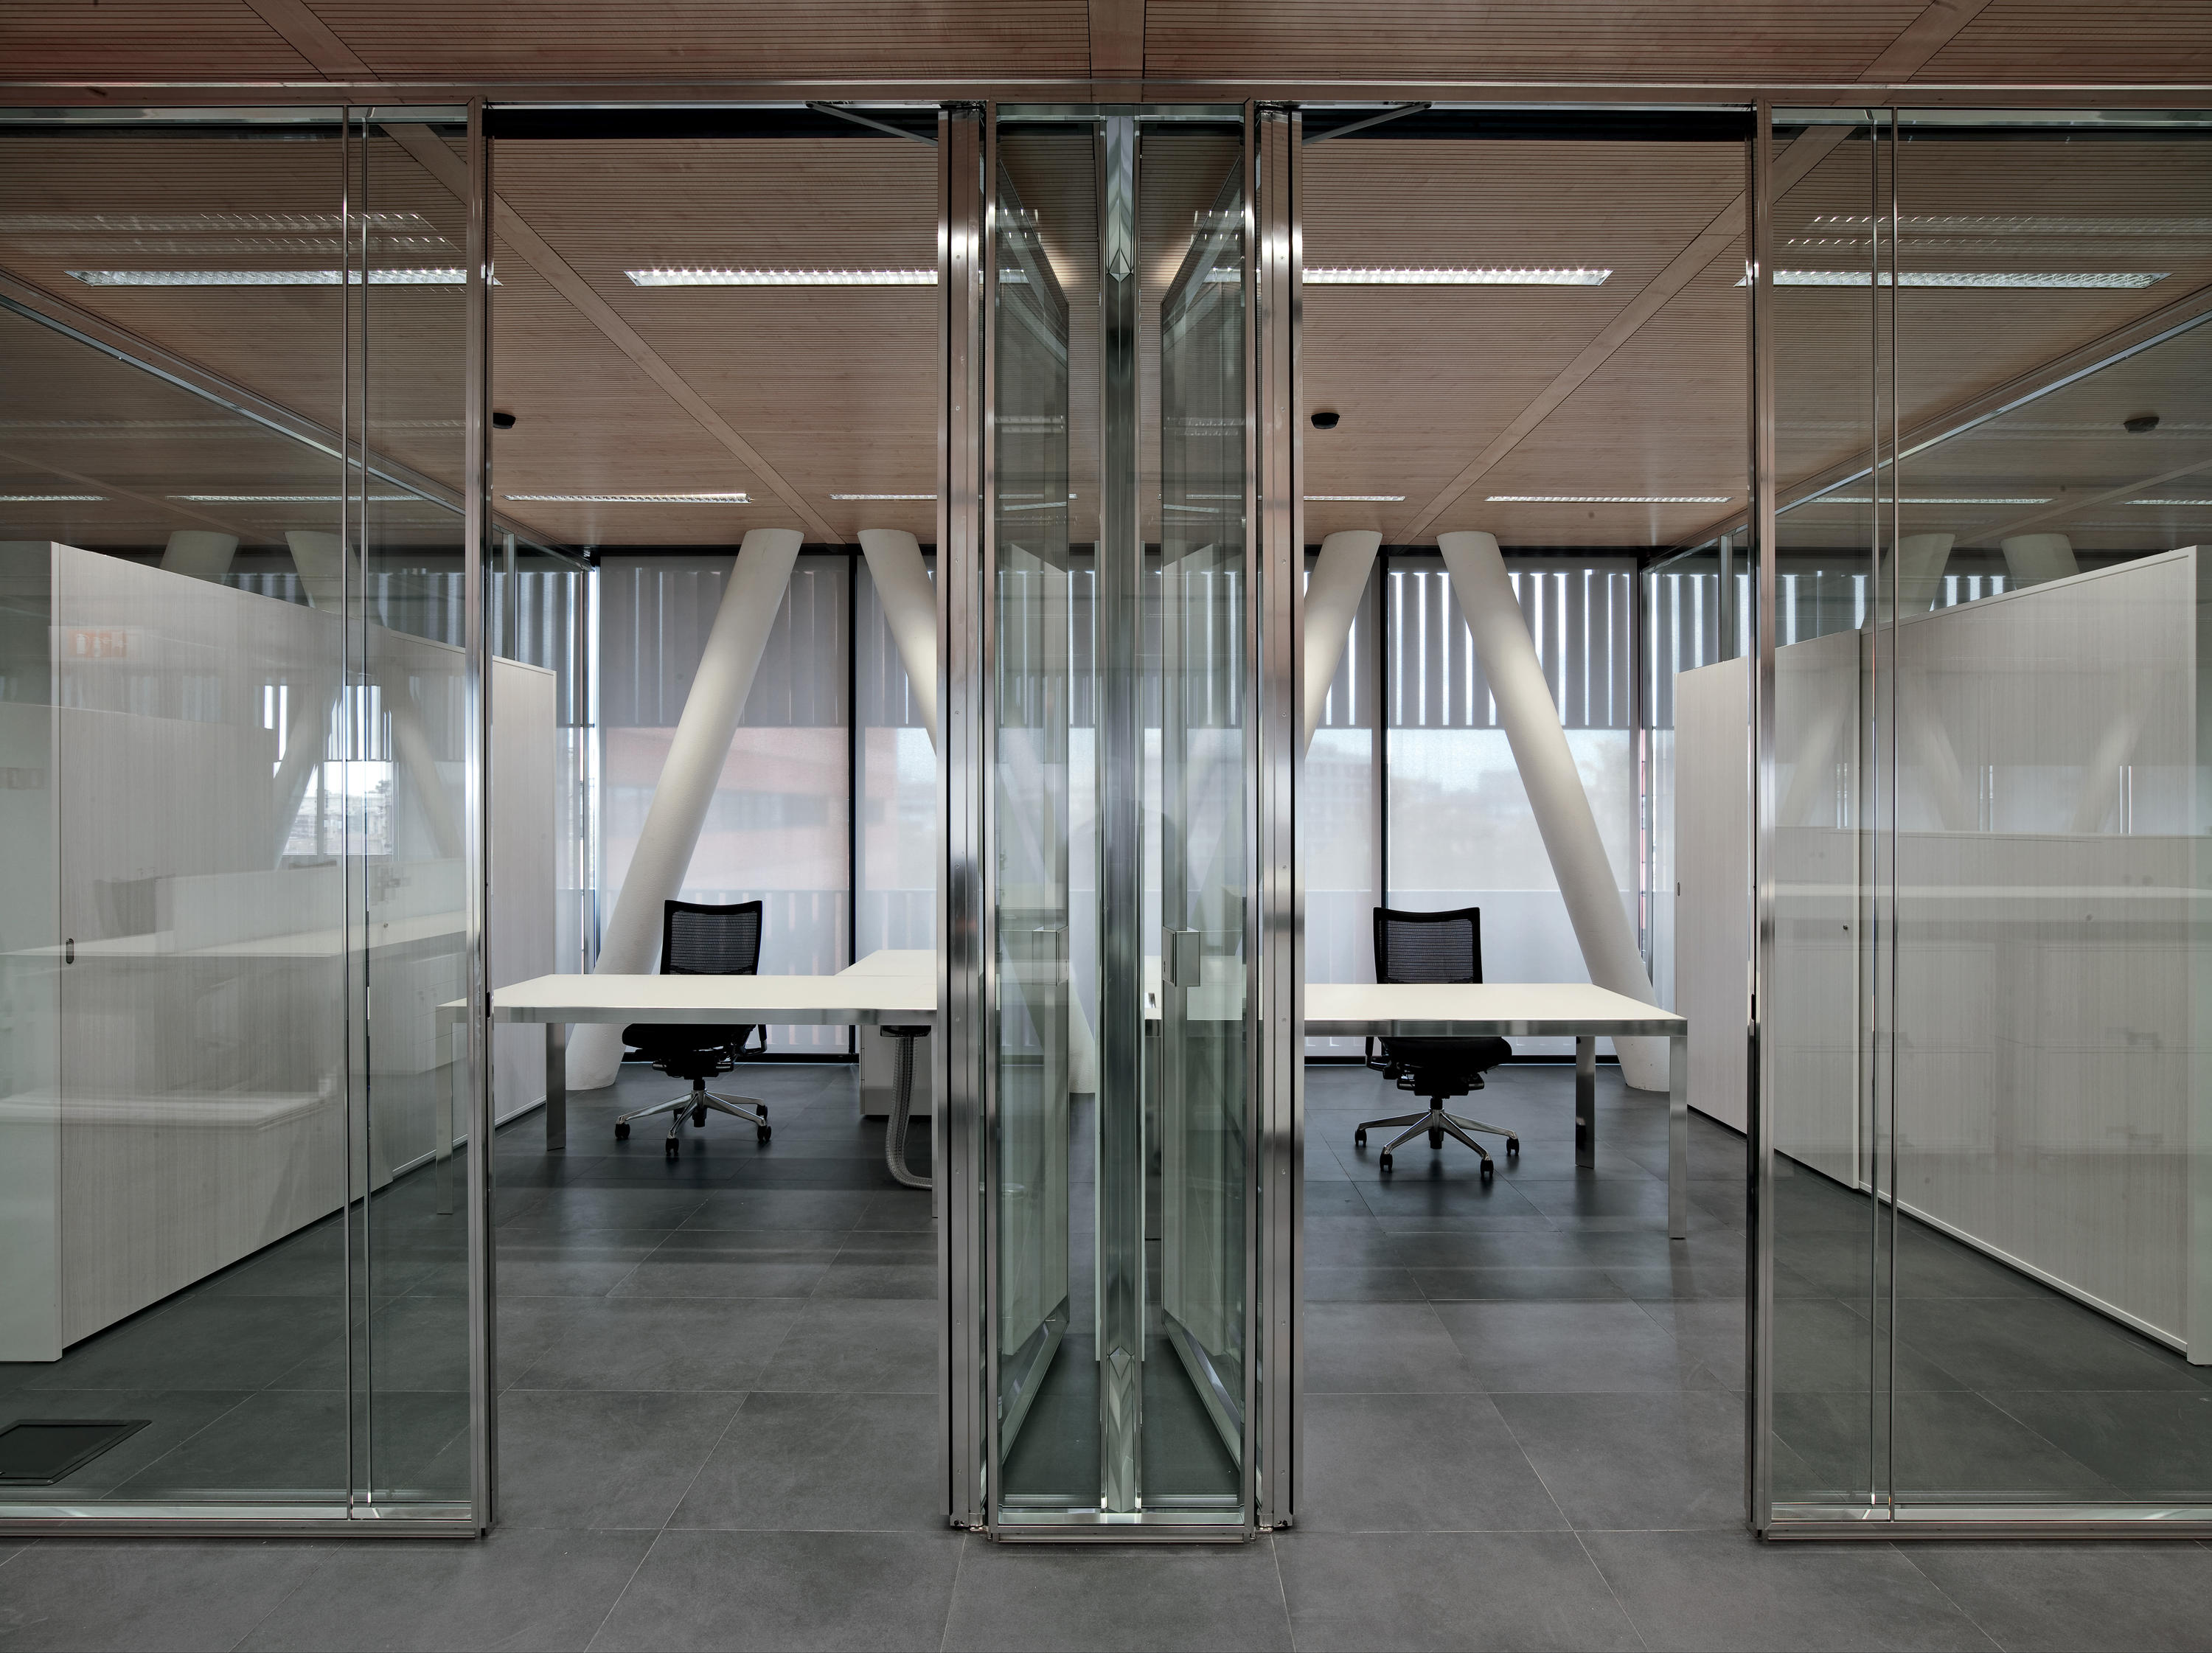 Ap partition partitions from unifor architonic for Unifor turate